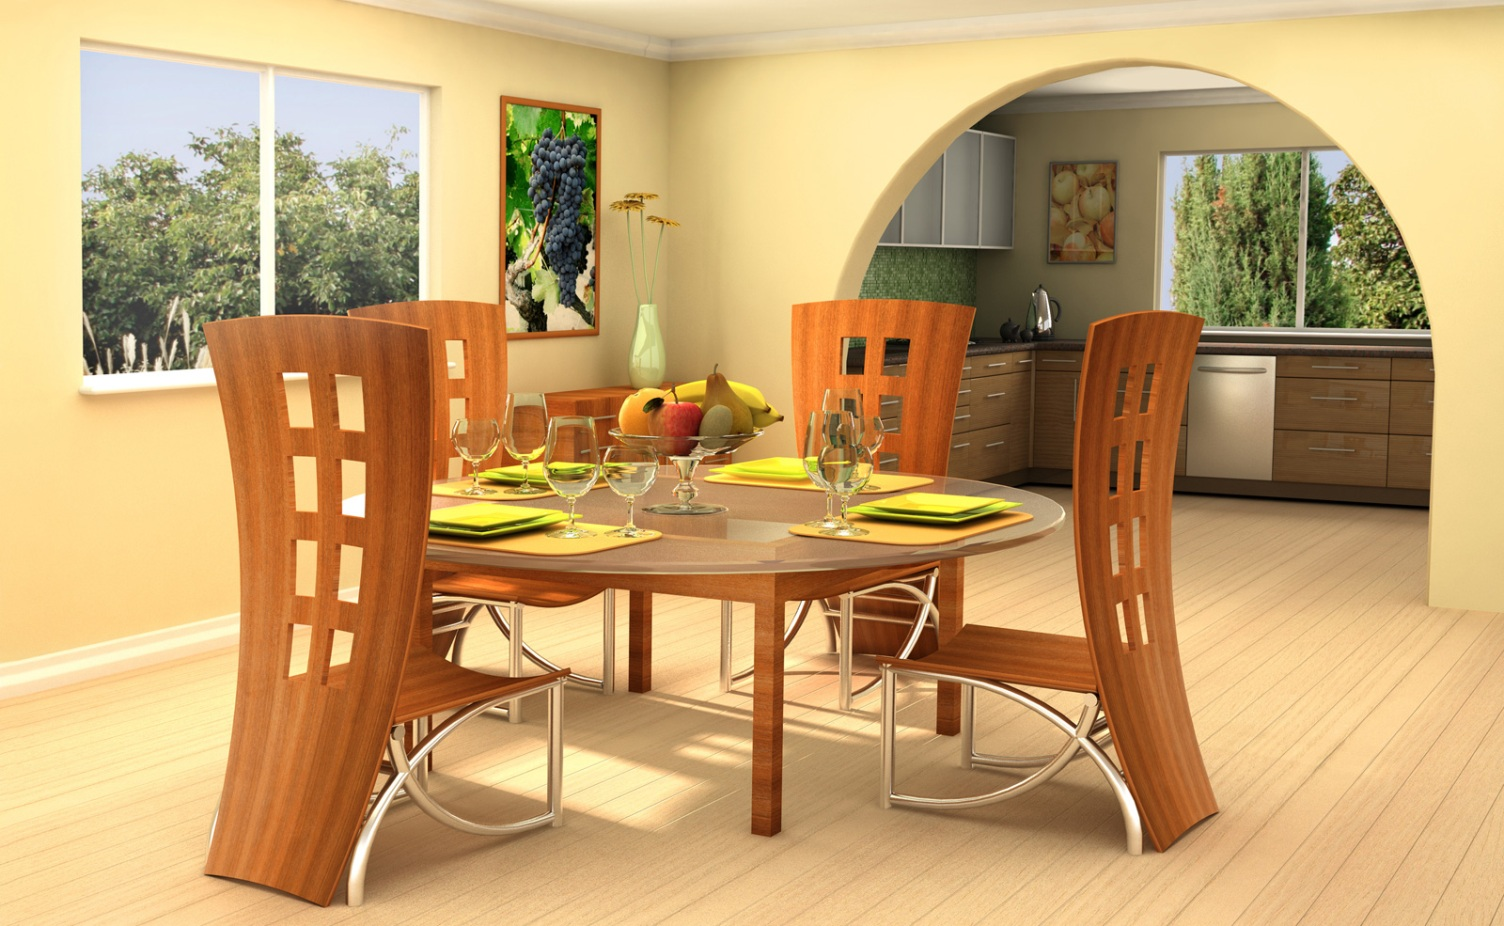 Go Creative And Pick Unique Dining Room Table And Chairs